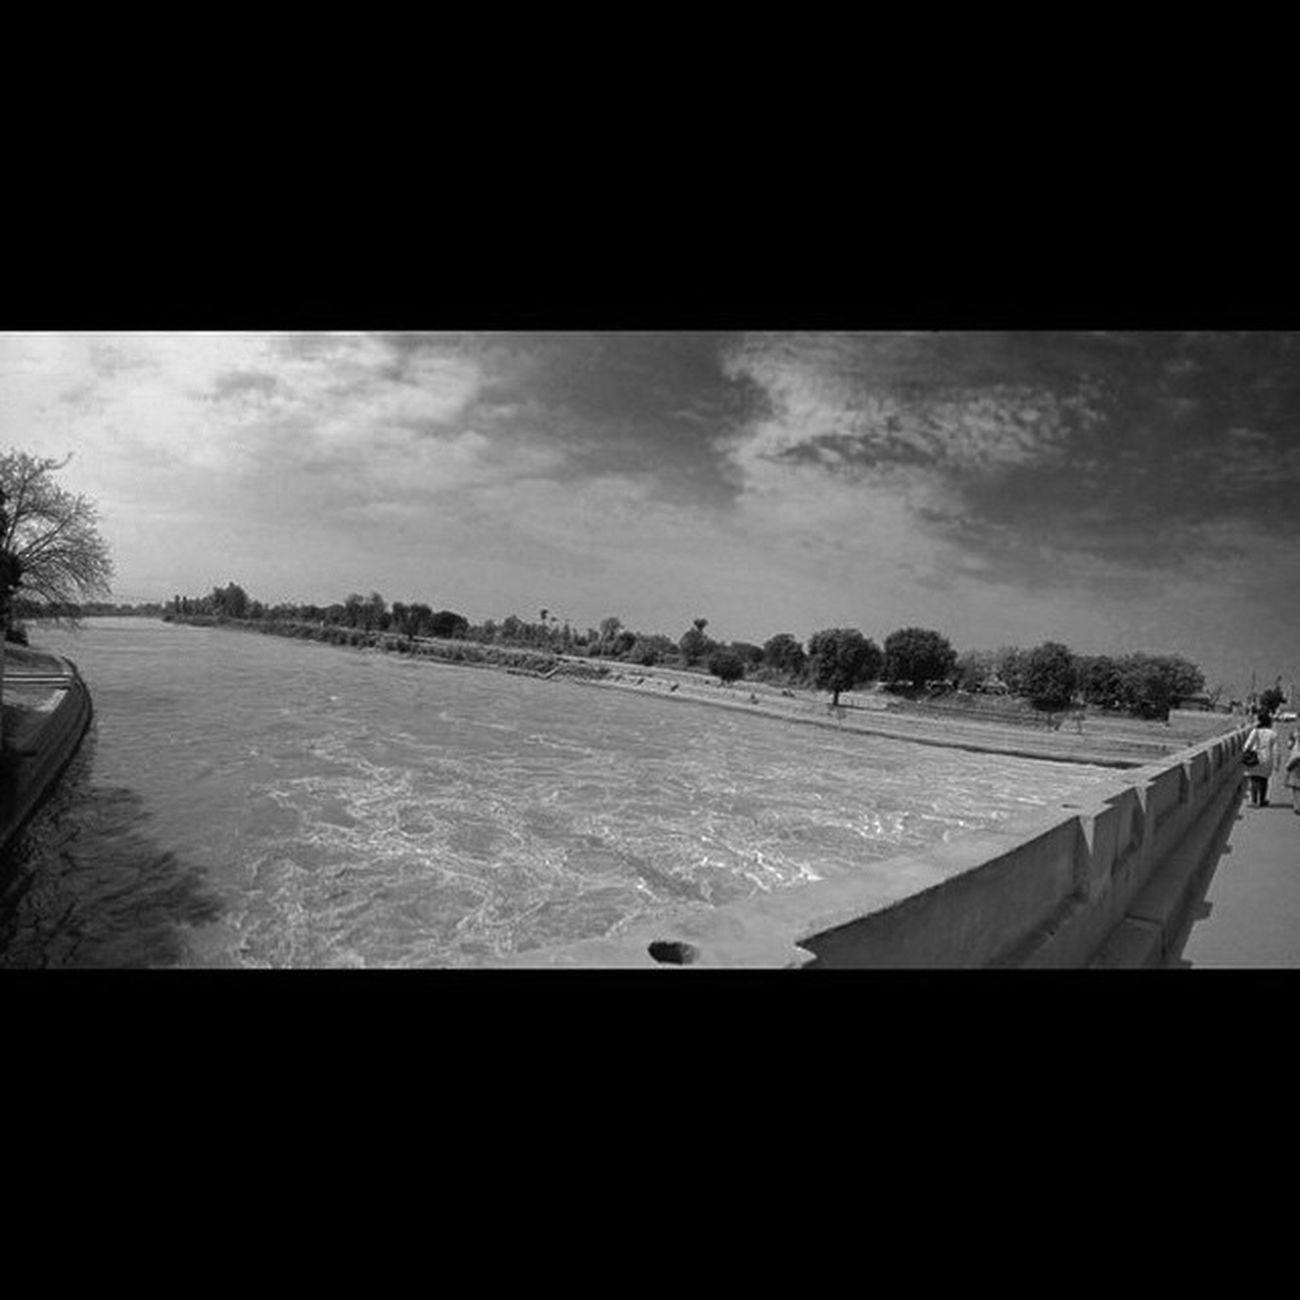 Another view Panaromic ! Panaroma Instapic Instalike Instalove Instashot Instaphoto Instadaily Instagrammers IPhone4s Iphoneonly IPhoneography Iphoneographers Amazing Awesome Tagsforlikes Followme Likeforlike Punjab Village River Sutlej Canal Bridge Indiapic Dailypic dailylike dawn dslr canon indiapictures